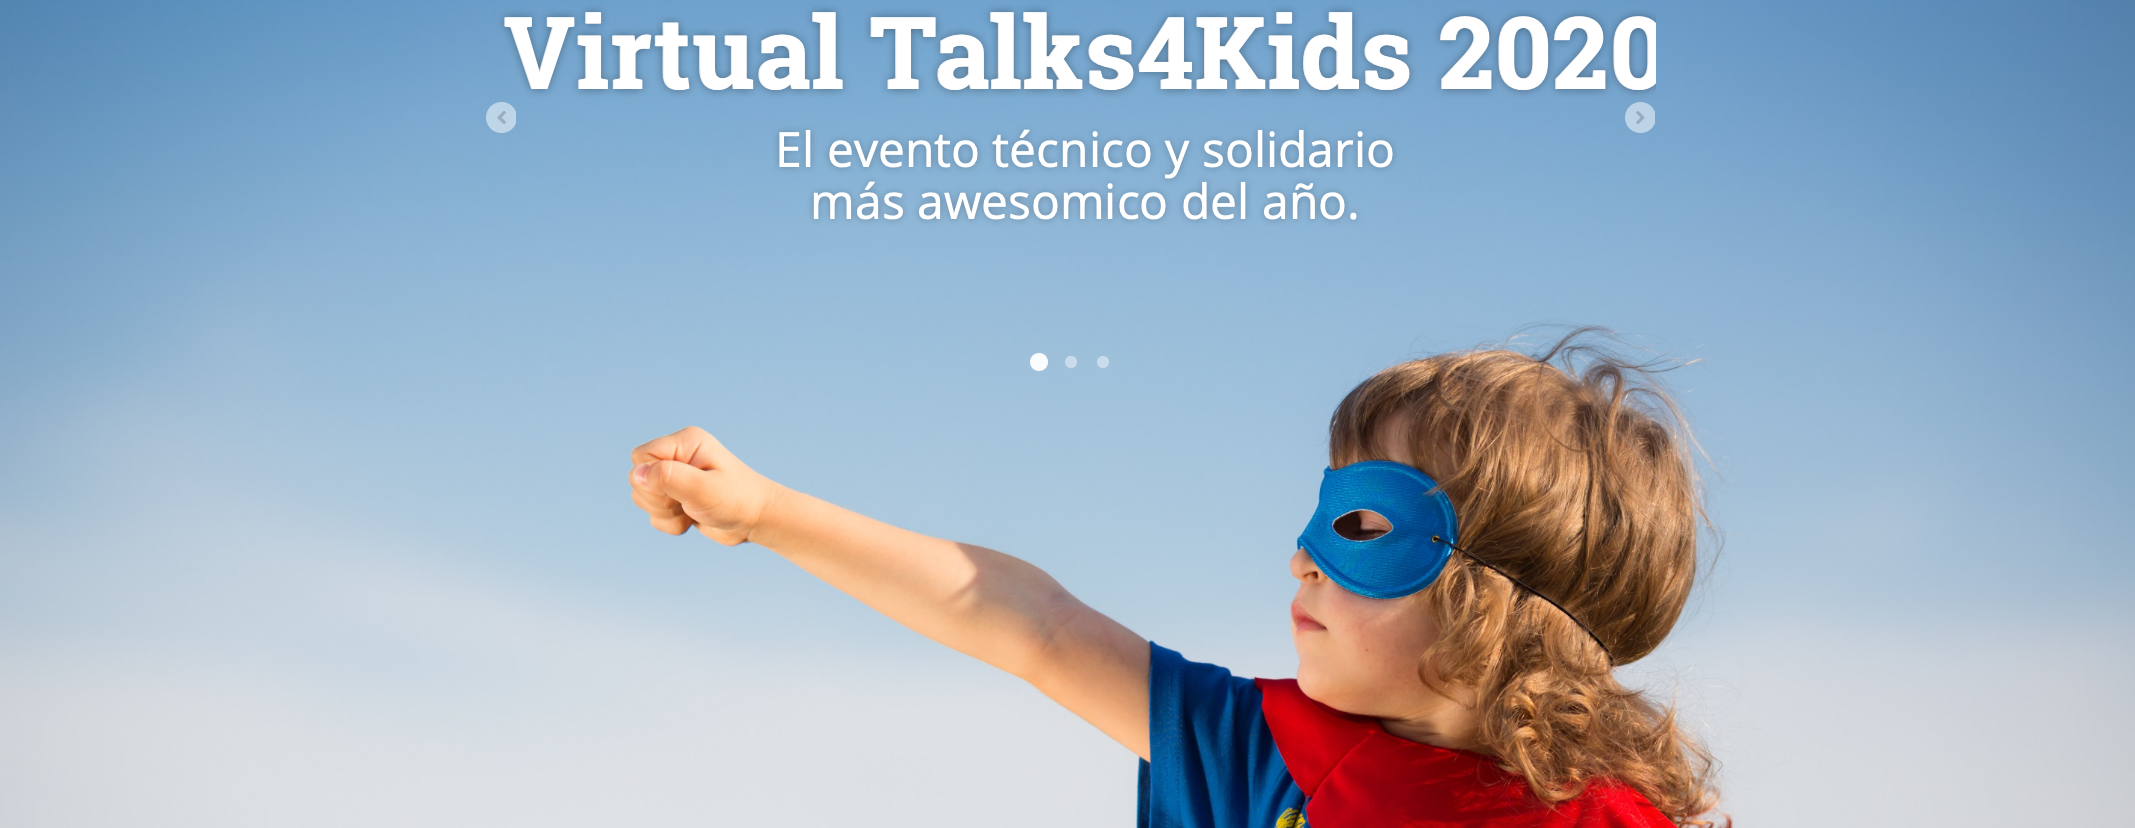 Tras la resaca del Talks4Kids 2020